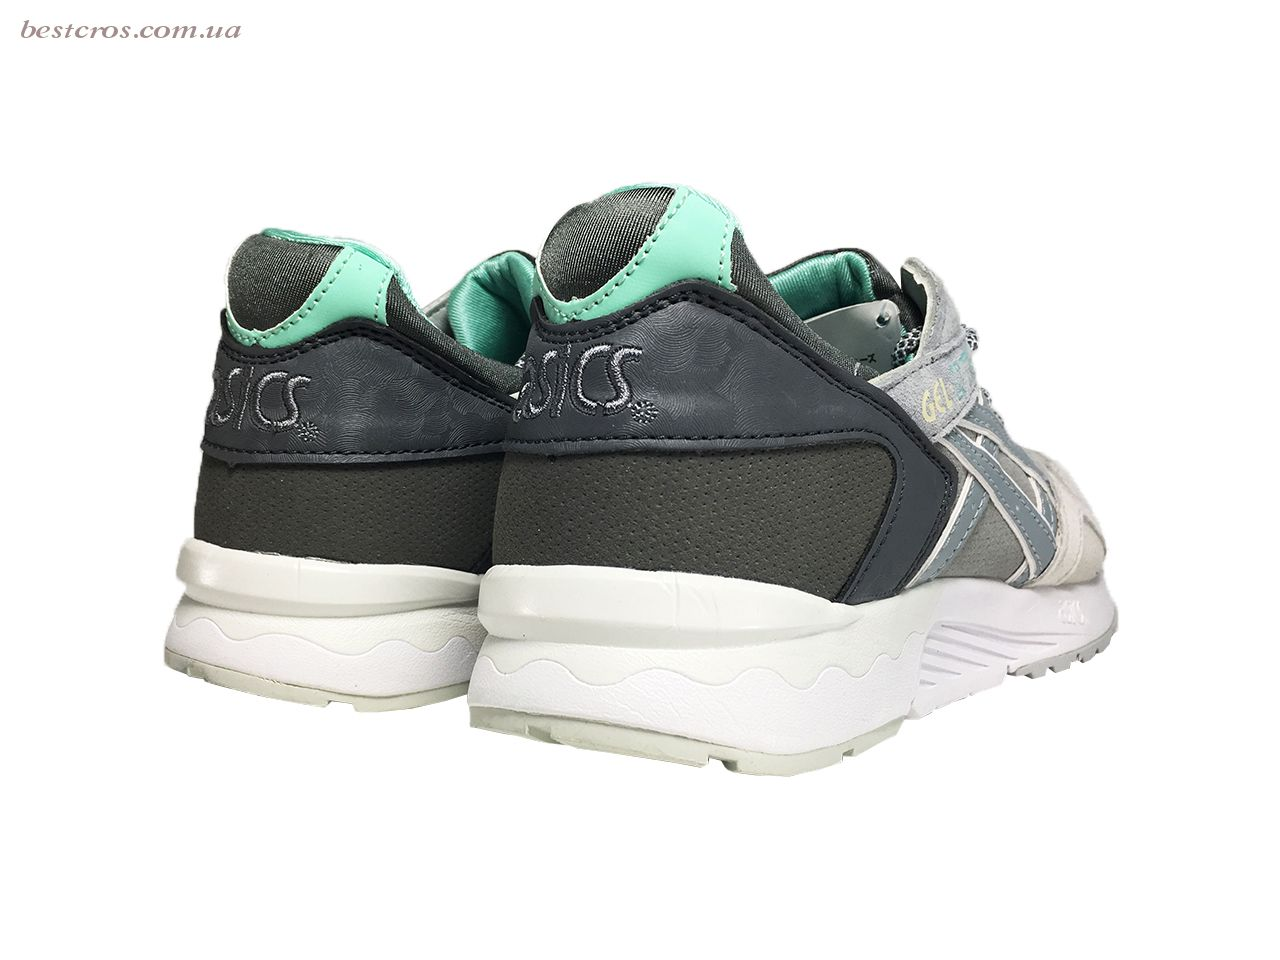 Мужские кроссовки Asics Gel Cream/Grey/Black/White/Light green - фото №6